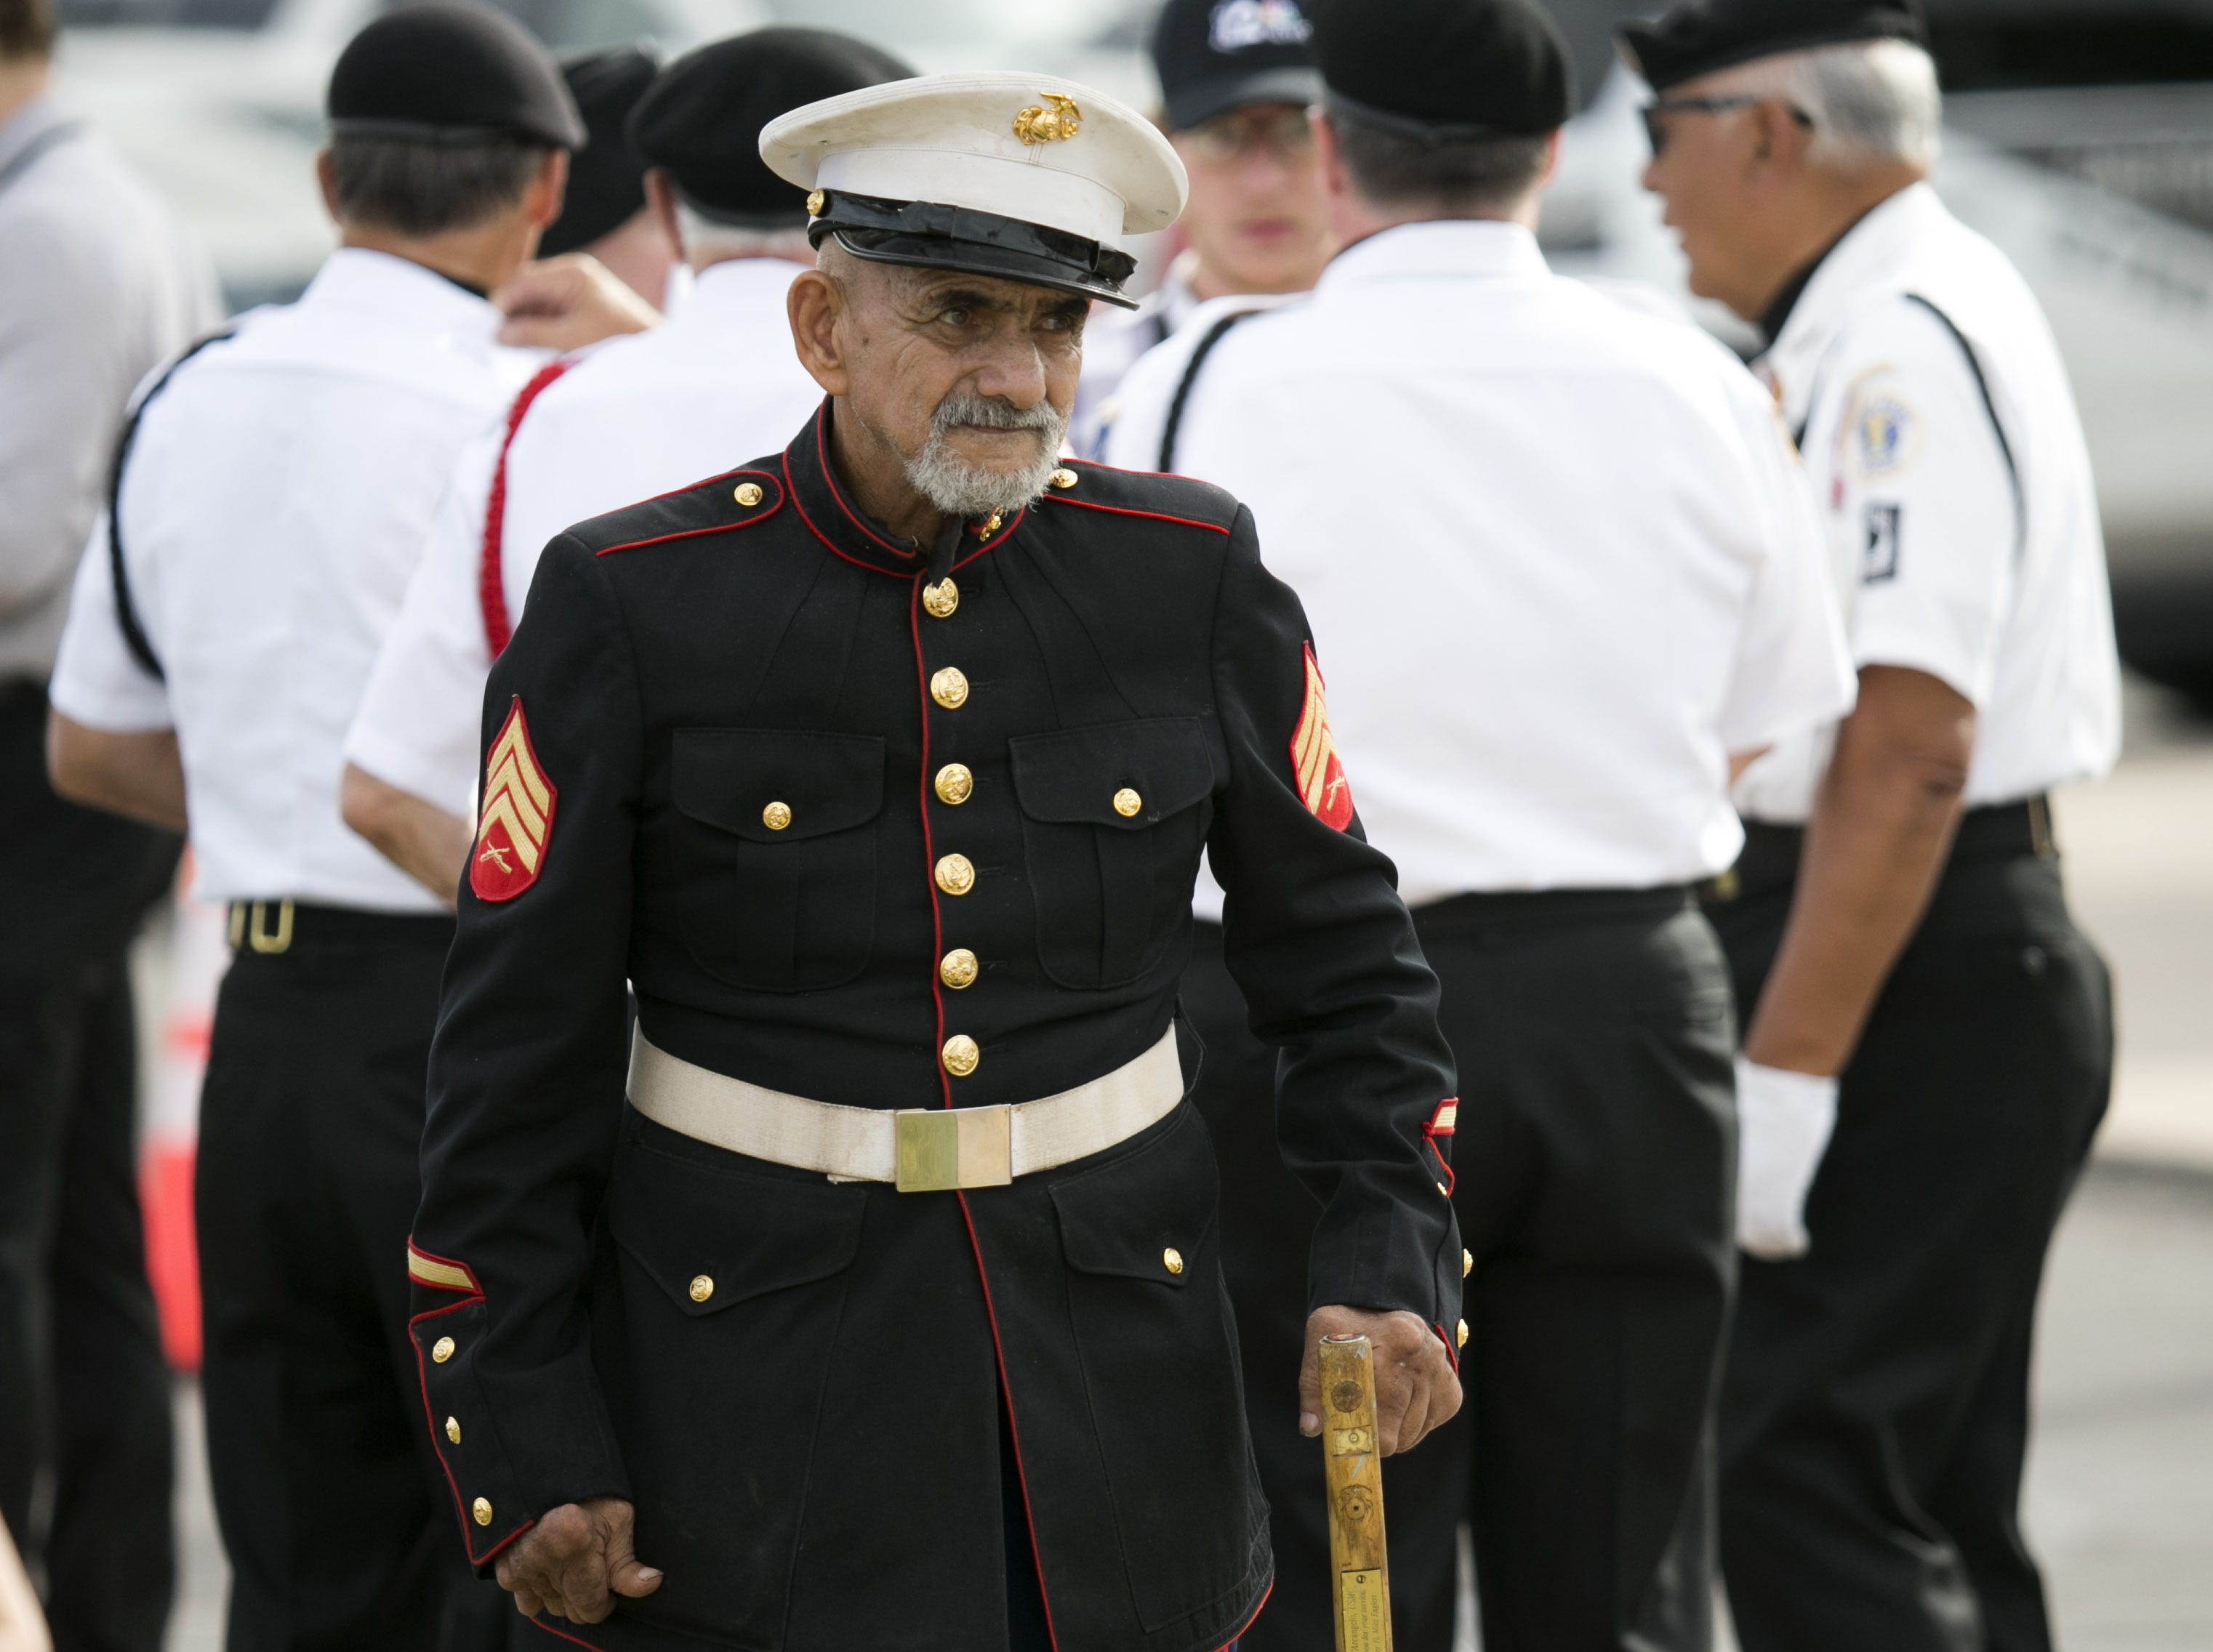 Tony Darcangelo of Phoenix, and a Marine Corps veteran of the Korean War, looks on outside North Phoenix Baptist Church before the memorial service for Senator John McCain in Phoenix on Aug. 30, 2018.